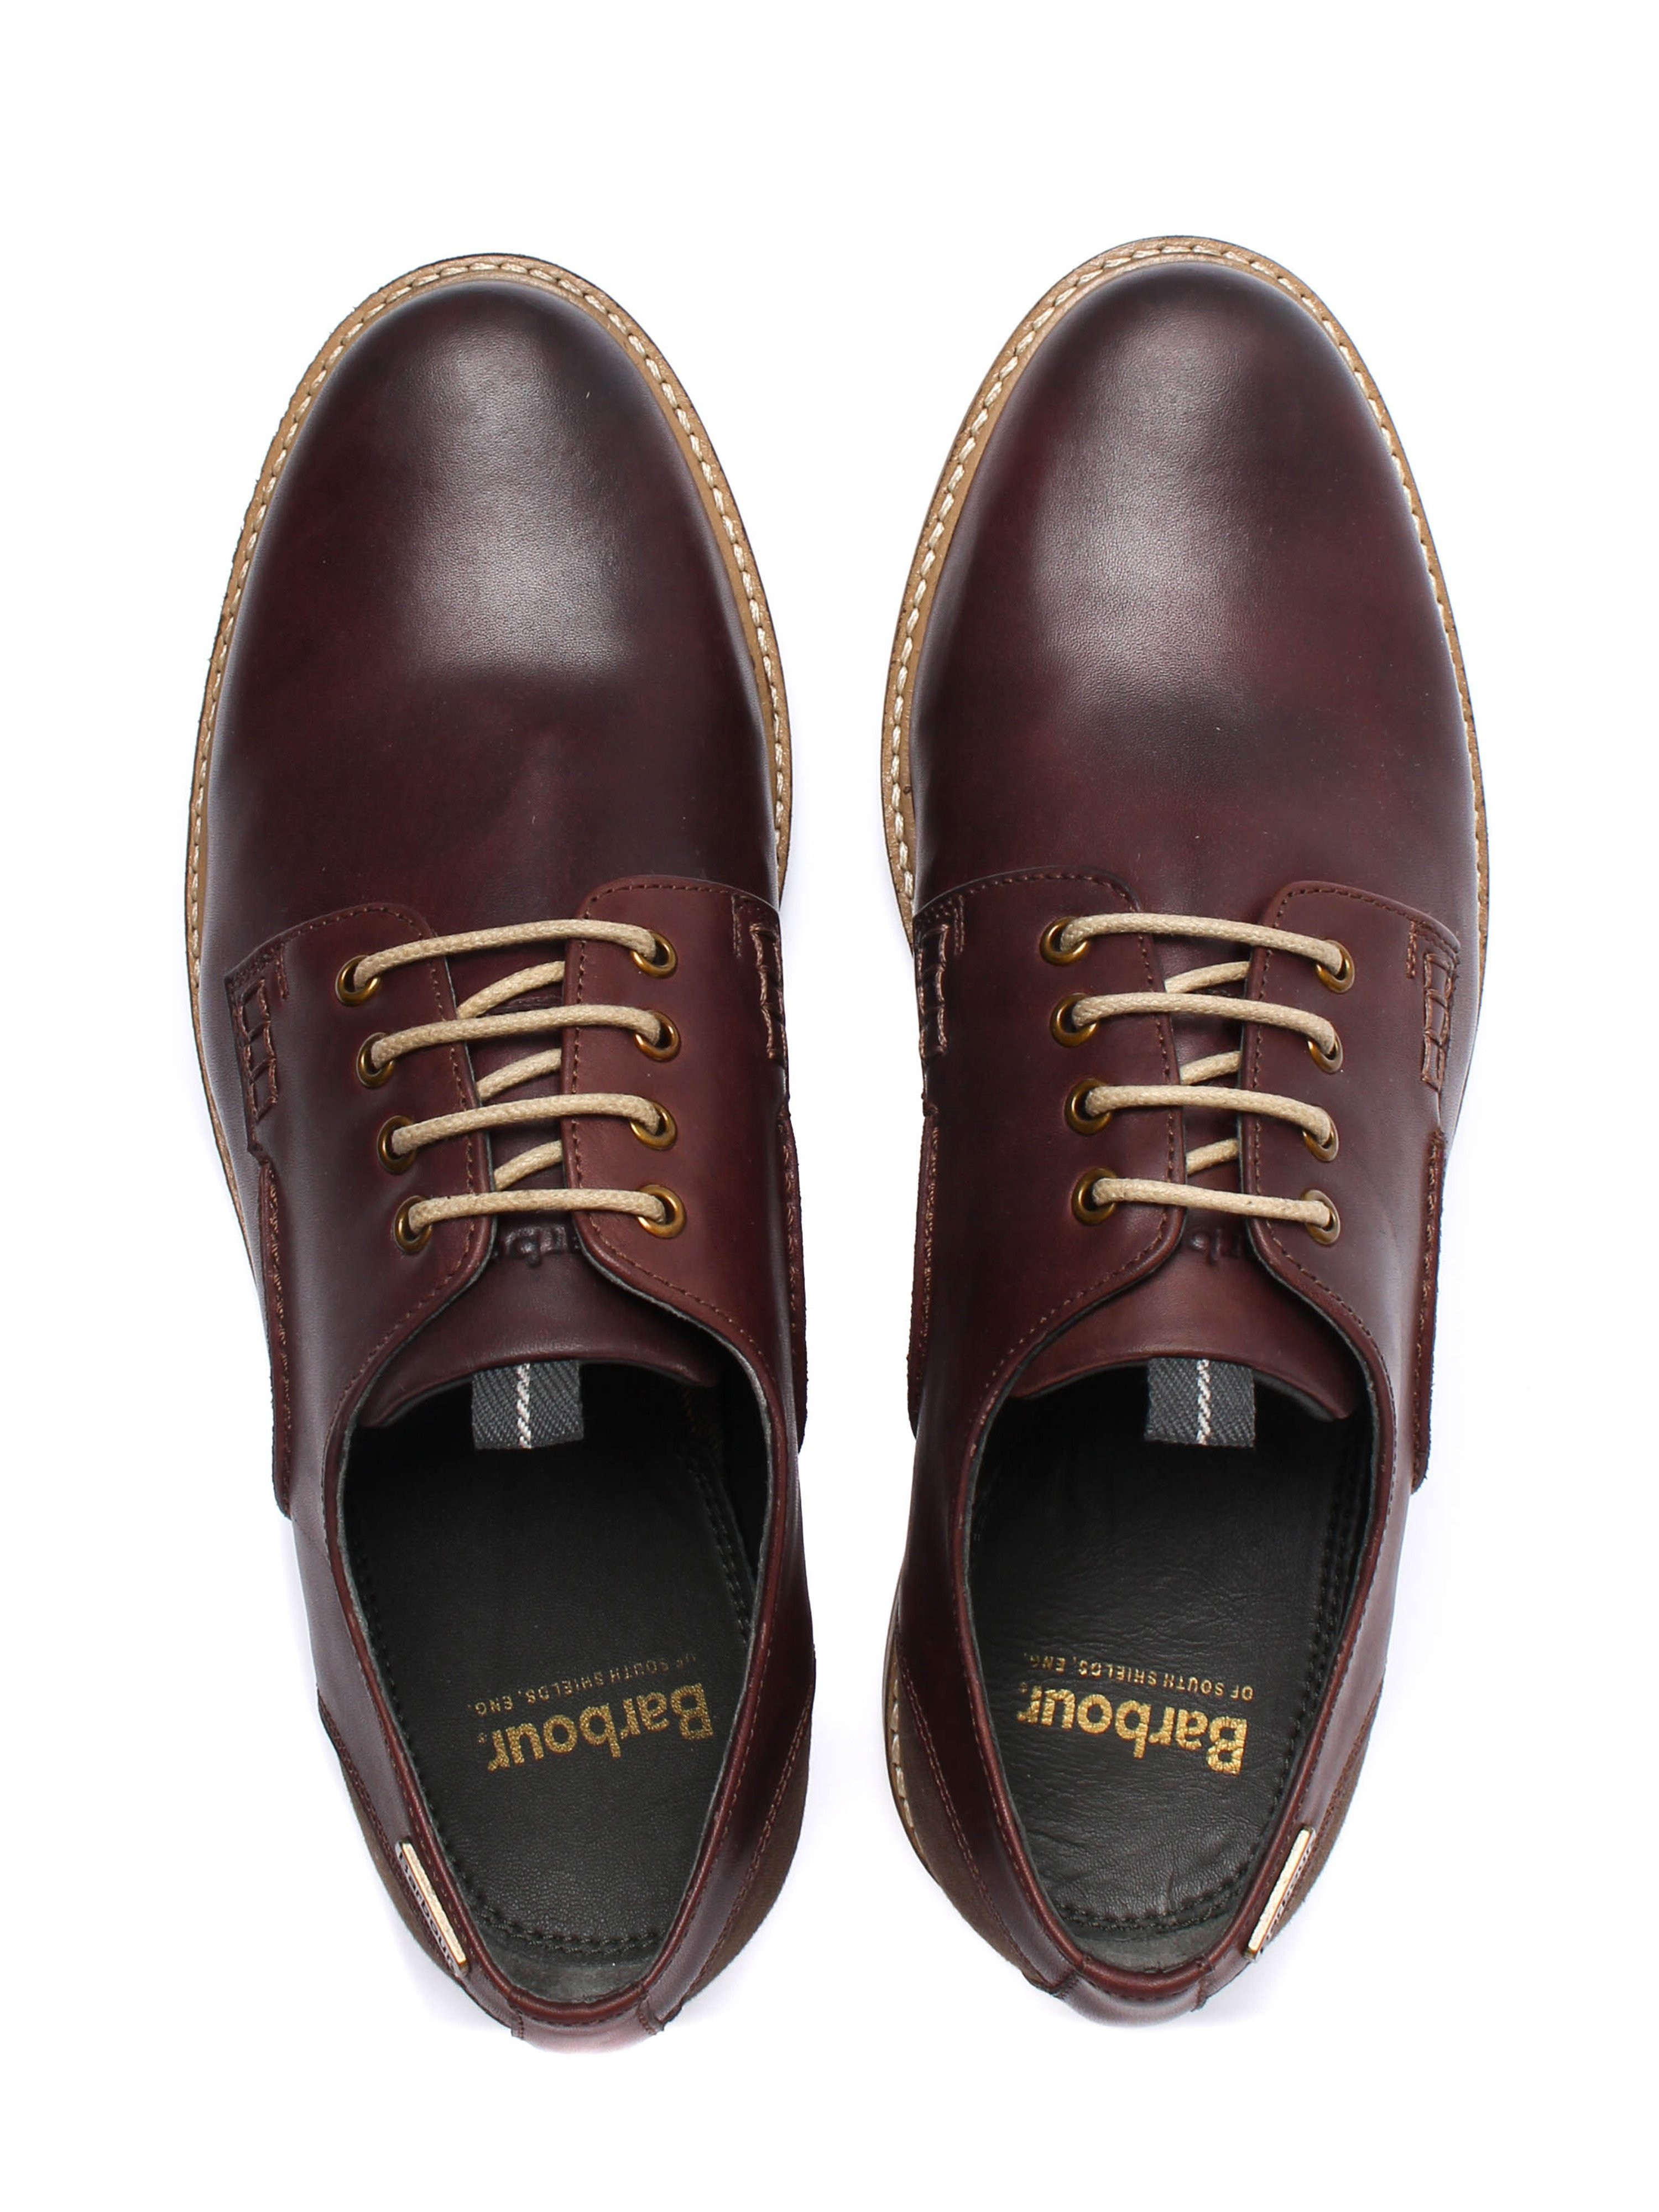 Barbour Men's Bramley Leather Derby Shoe - Brown